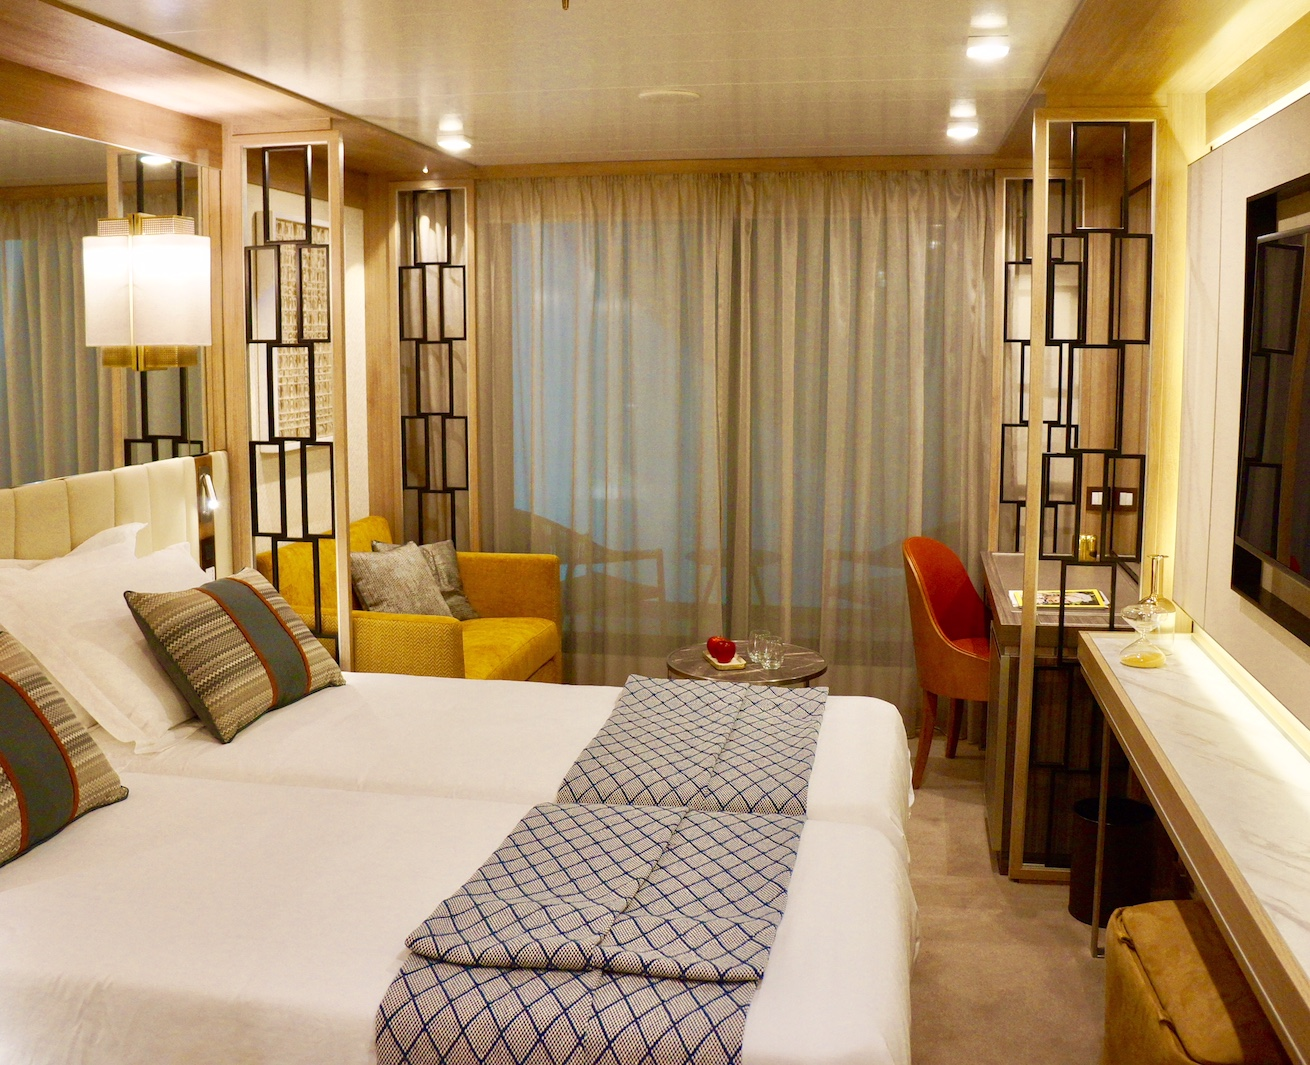 A preview of The World Explorer's Veranda Suite with a twin bed configuration.